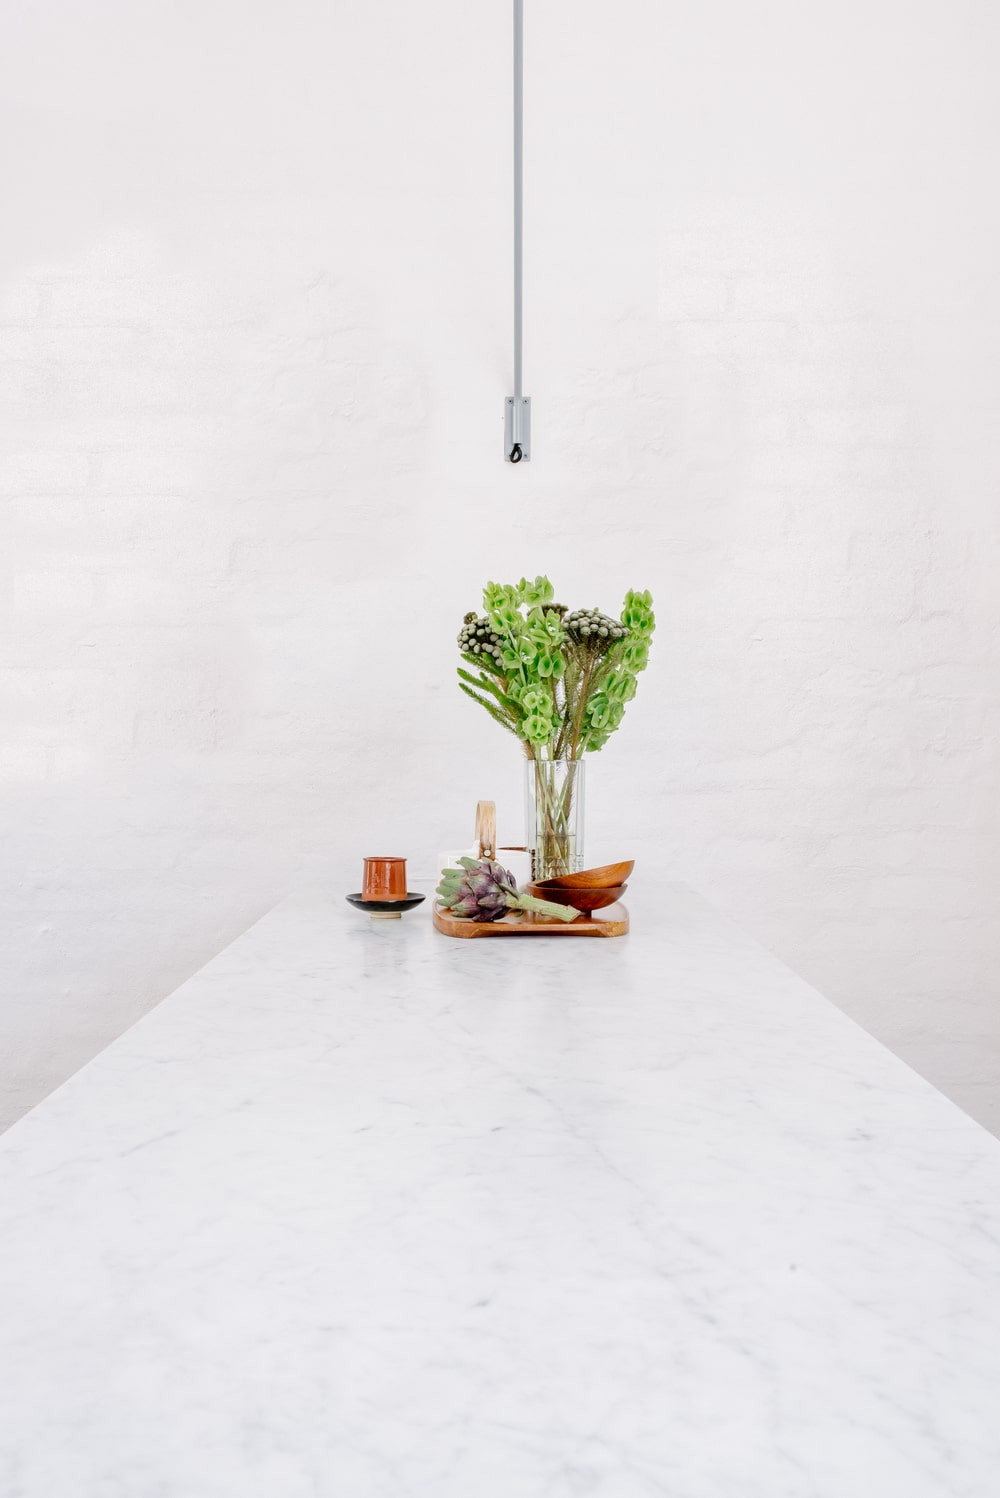 This is the countertop of the kitchen island with a white marble tone.